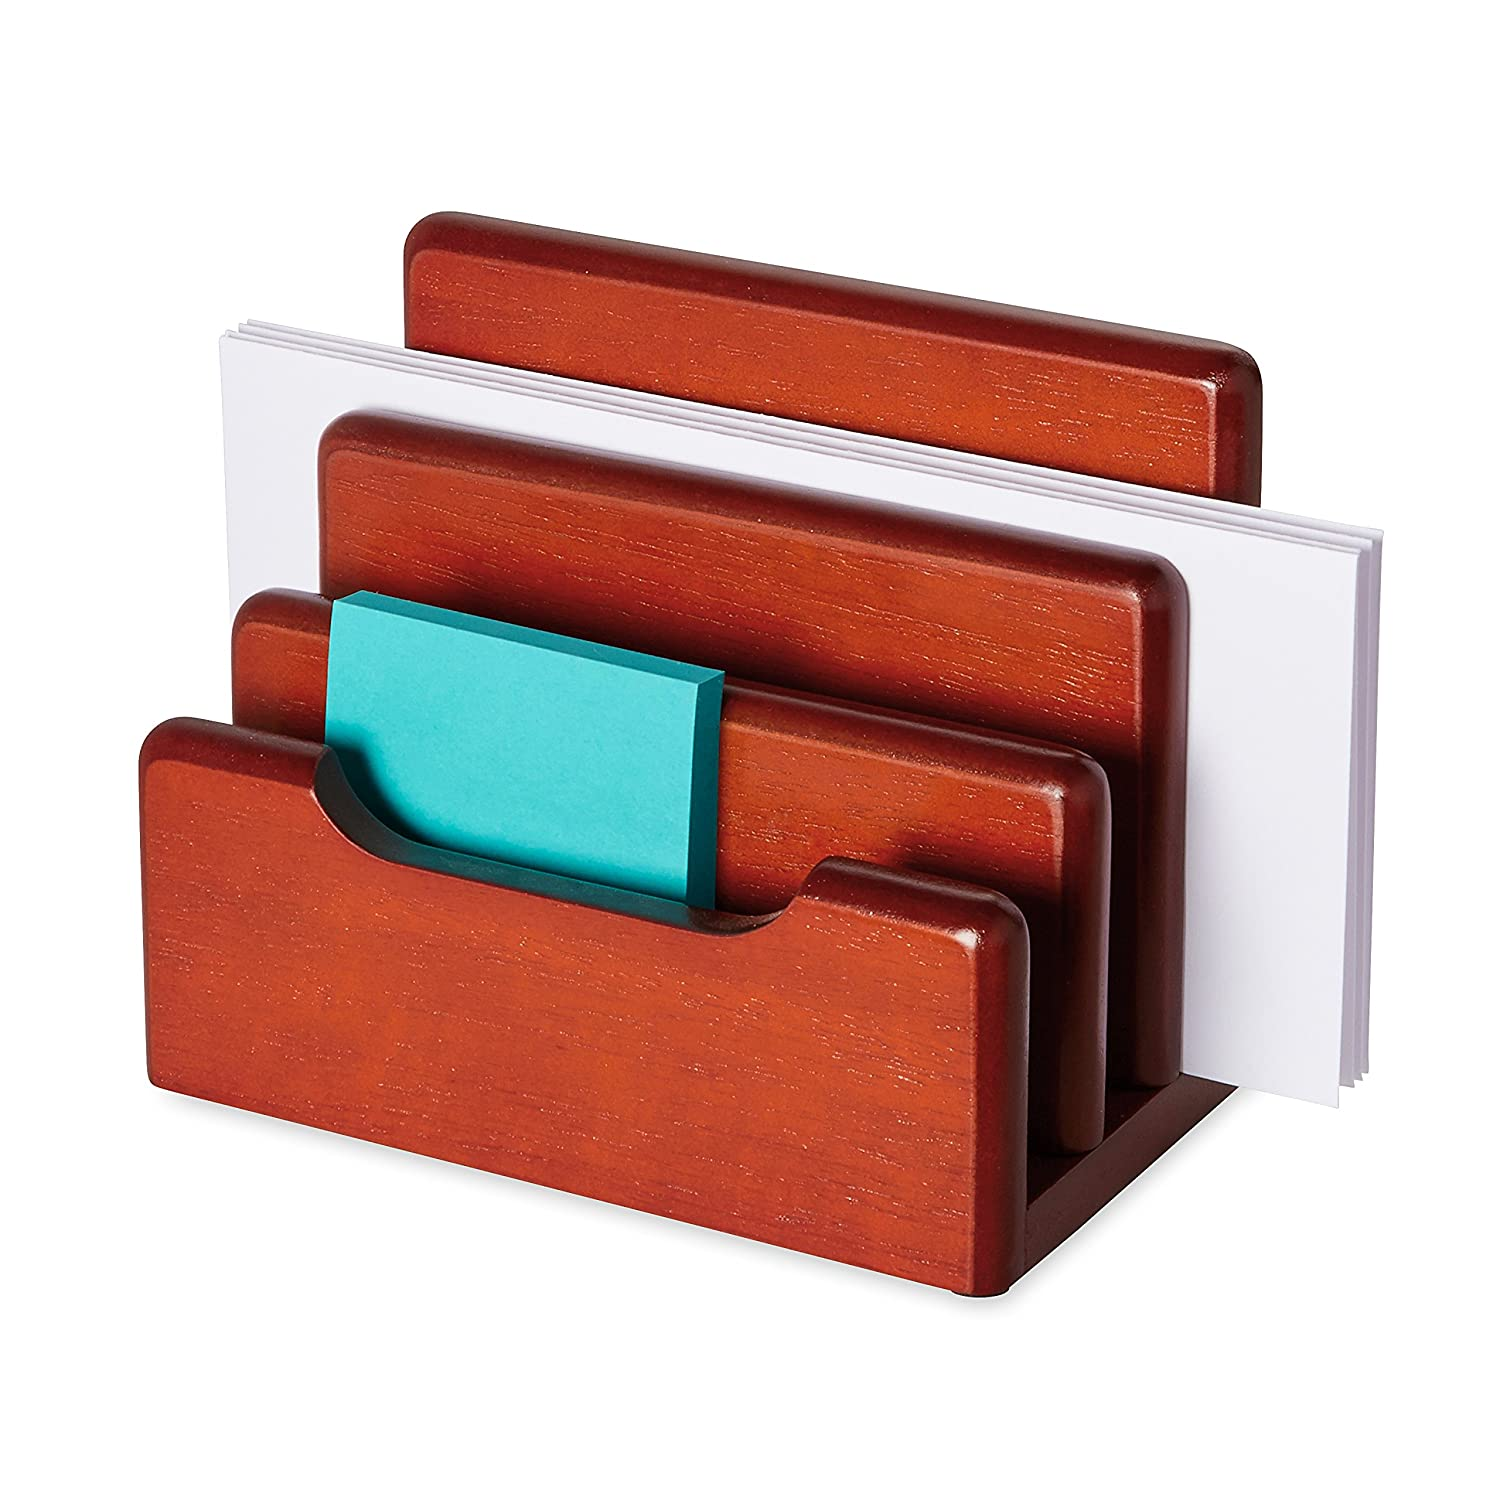 office paper holders. Rolodex 23420 Wood Tones Desktop Sorter, Mahogany: Amazon.co.uk: Office Products Paper Holders R